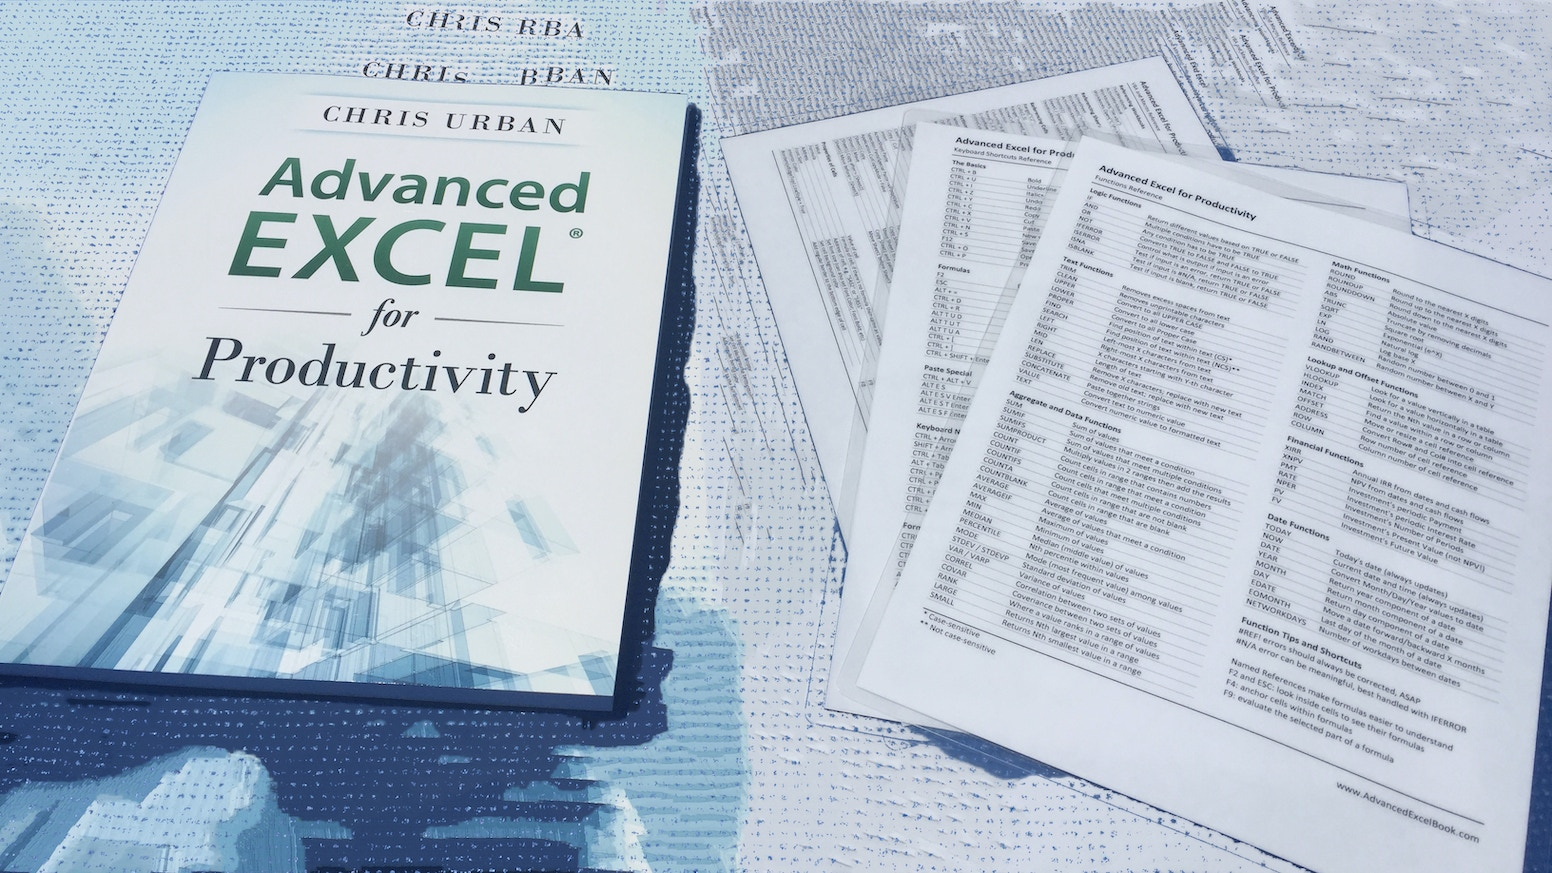 Advanced Excel Book by Chris Urban » Available on Amazon com